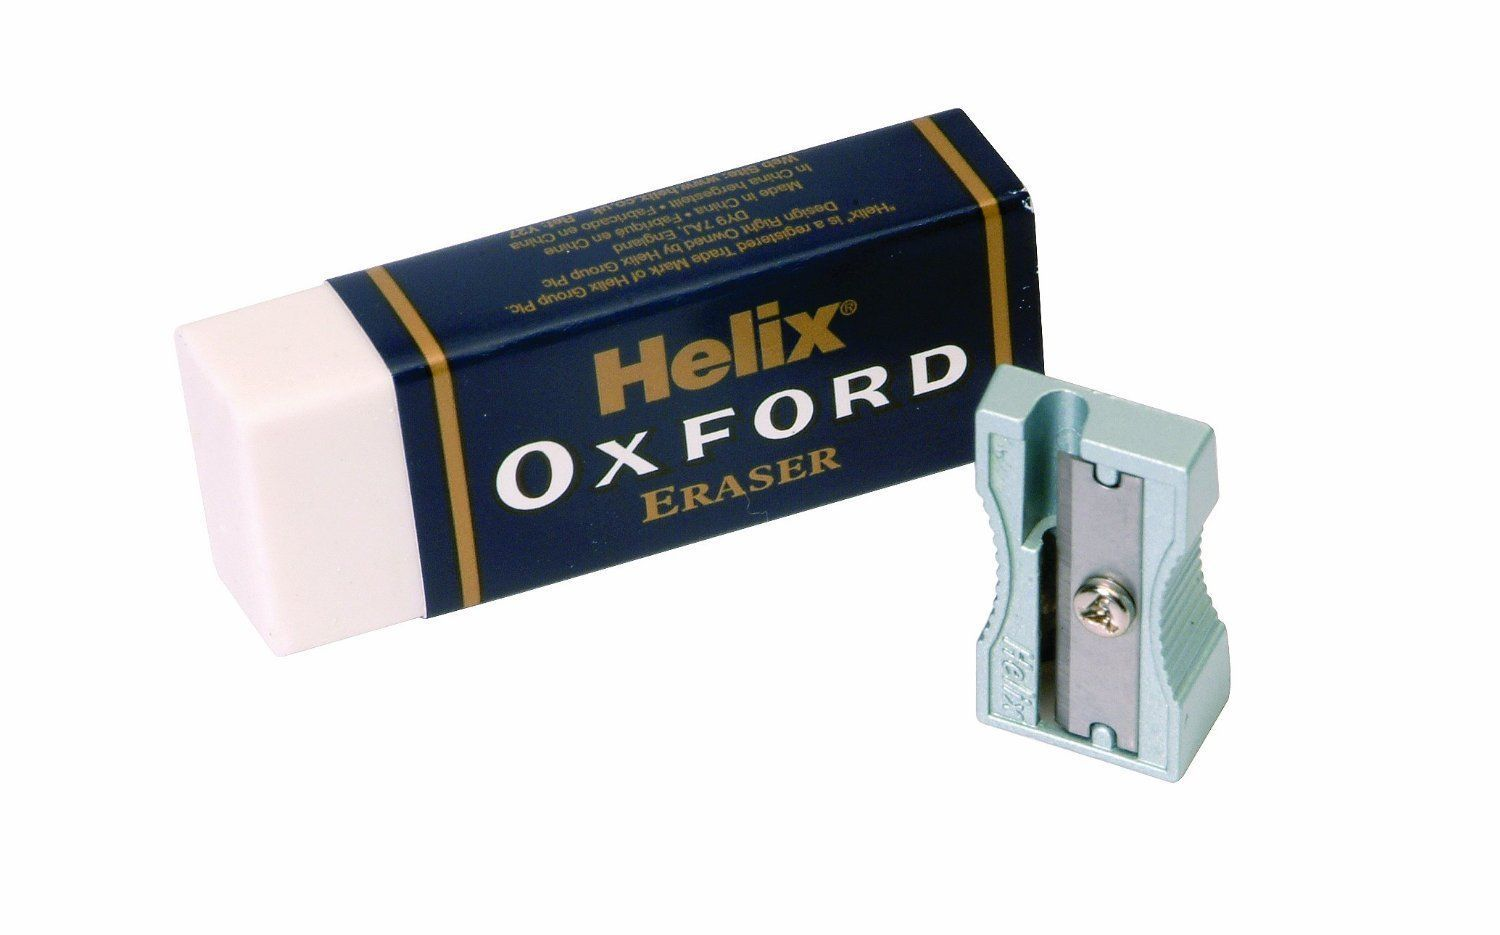 HELIX OXFORD JUMBO LARGE PLASTIC RUBBER ERASER SINGLE HOLE SHARPENER